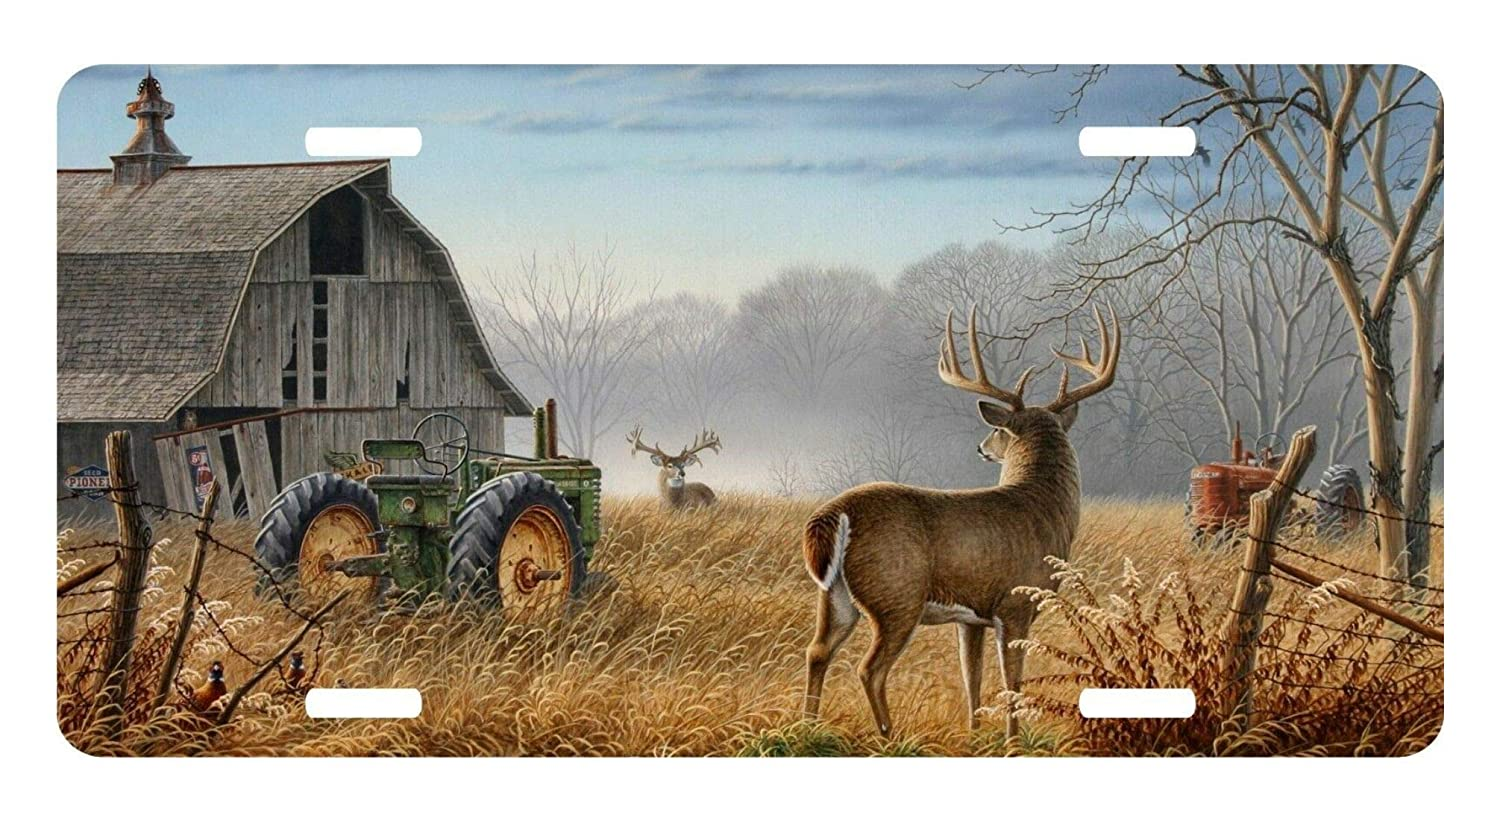 12 X 6 New Best Design Cool Old Tractor and Cute Deer//Elk Metal License Plate for Car